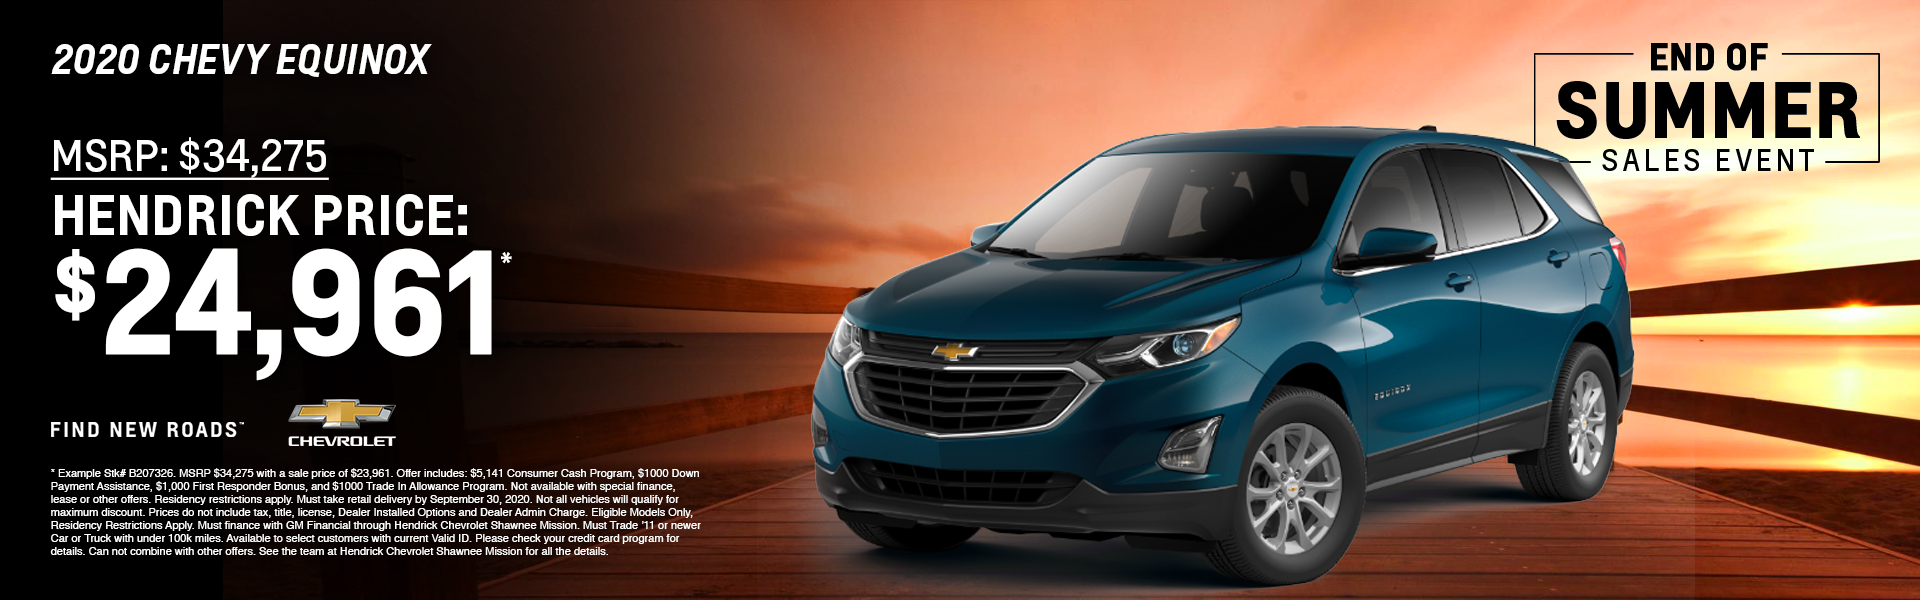 Chevy-Shawnee-Mission–Sept_TR_New-Vehicle-Specials-EQUINOX-1920×600